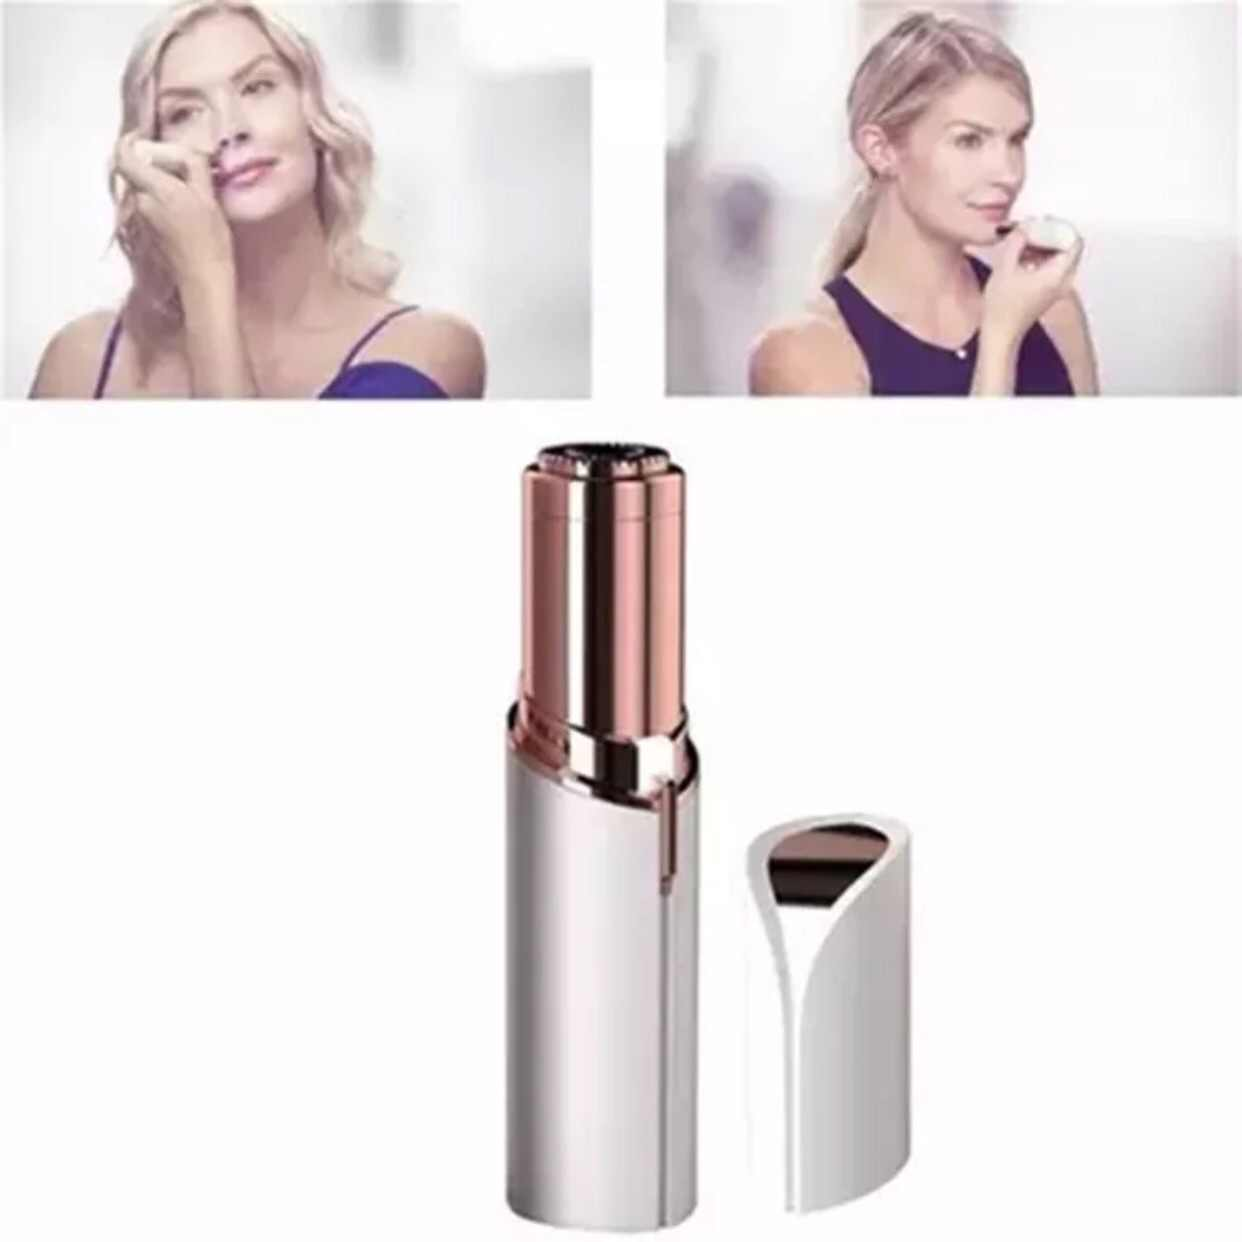 USB charging women facial hair remover epilator female shaver lip chin face hair removal compatible for finishing touch flawless